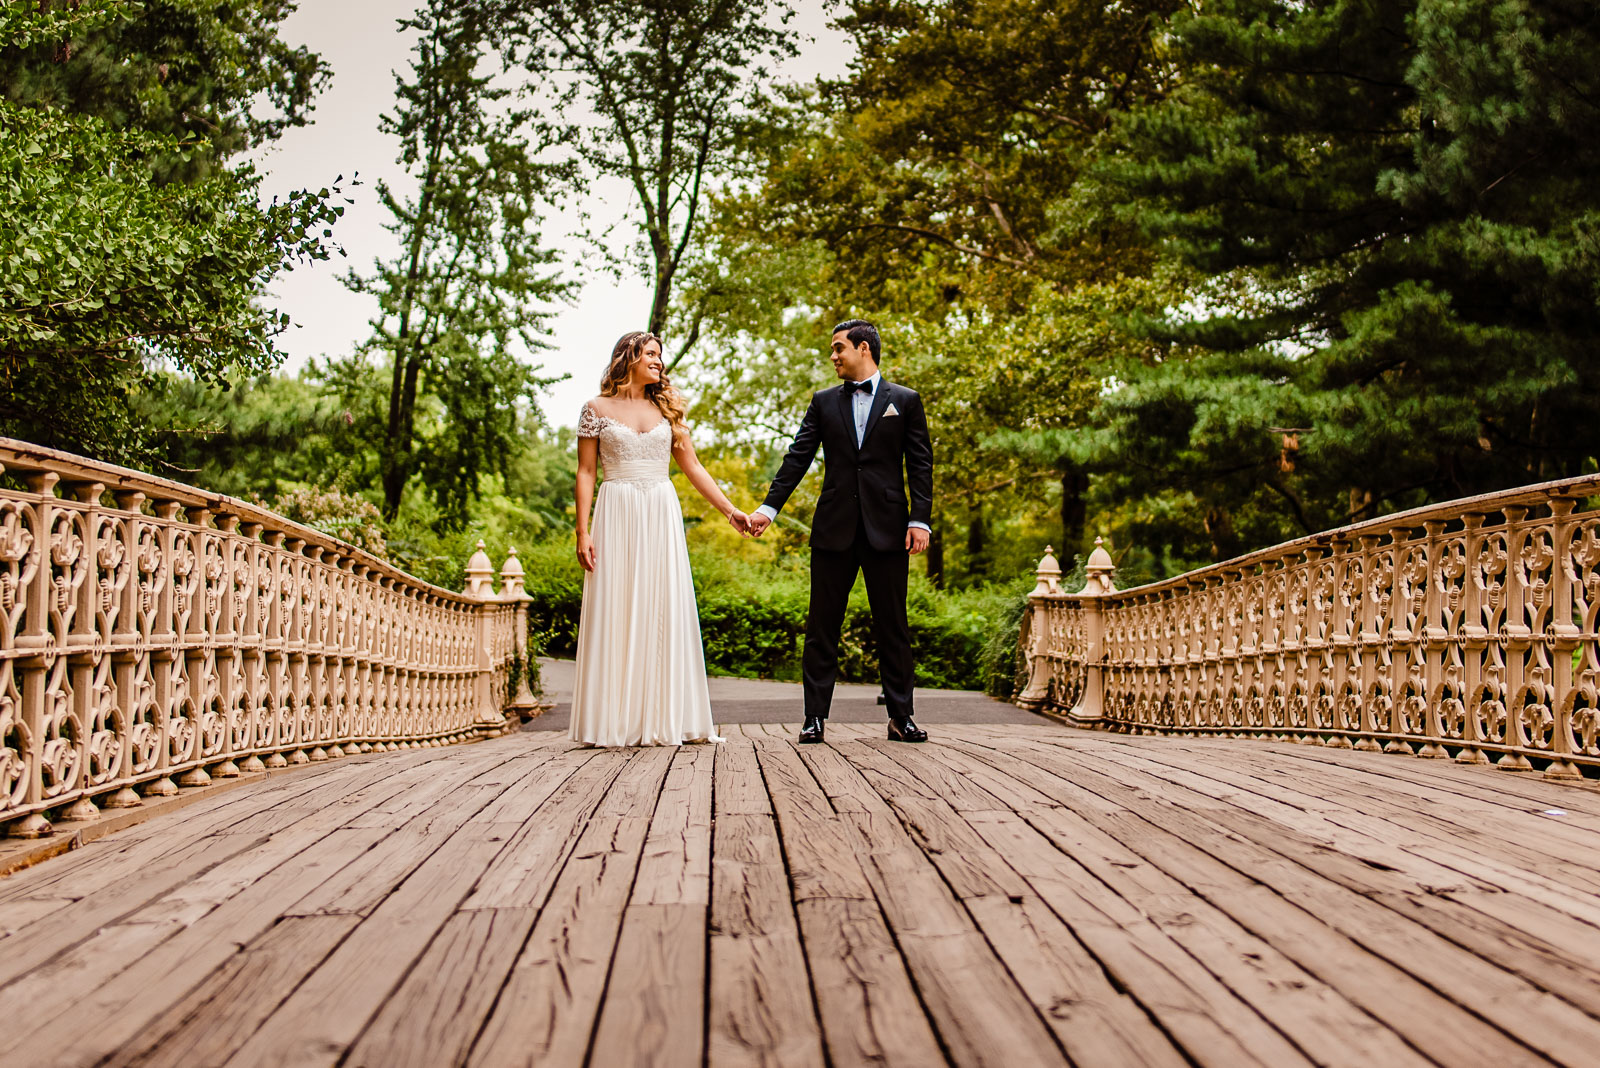 Brdie and groom portrait on bridge